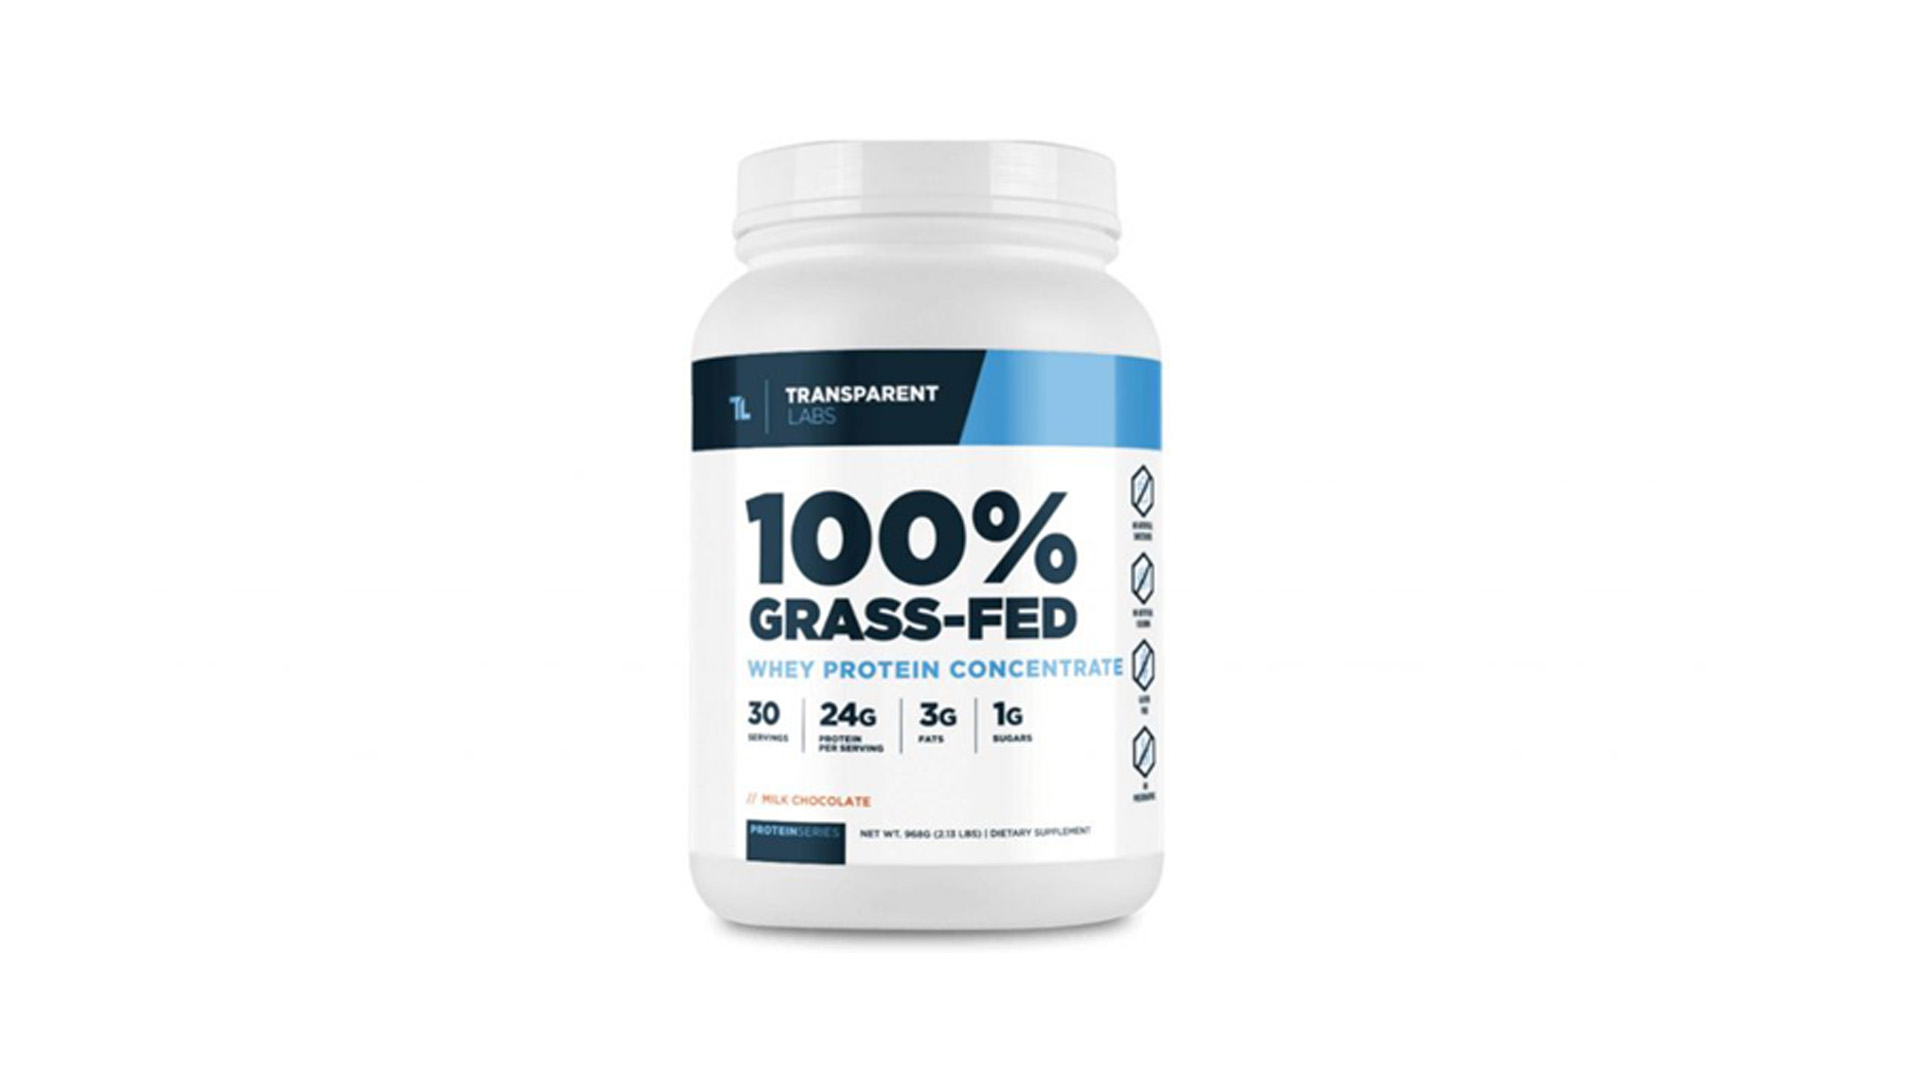 100% Grass-Fed Casein Protein by Transparent Labs